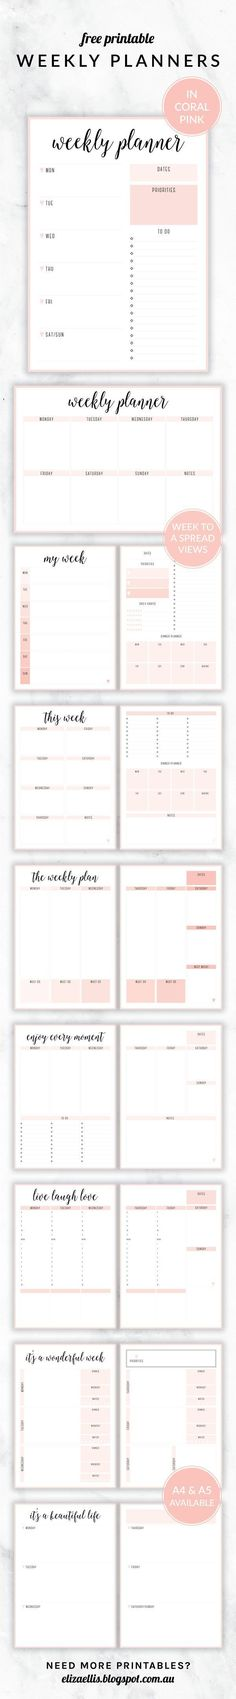 Free Printable Irma Weekly Planners in Coral by Eliza Ellis. With nine different styles, they're the perfect organizing solution for mums, entrepreneurs, bloggers, etsy sellers, professionals, WAHM's, SAHM's, students and moms. Available in 6 colors and both A4 and A5 sizes. Includes week to a page planners as well as week to a spread and two page planners. Enjoy!